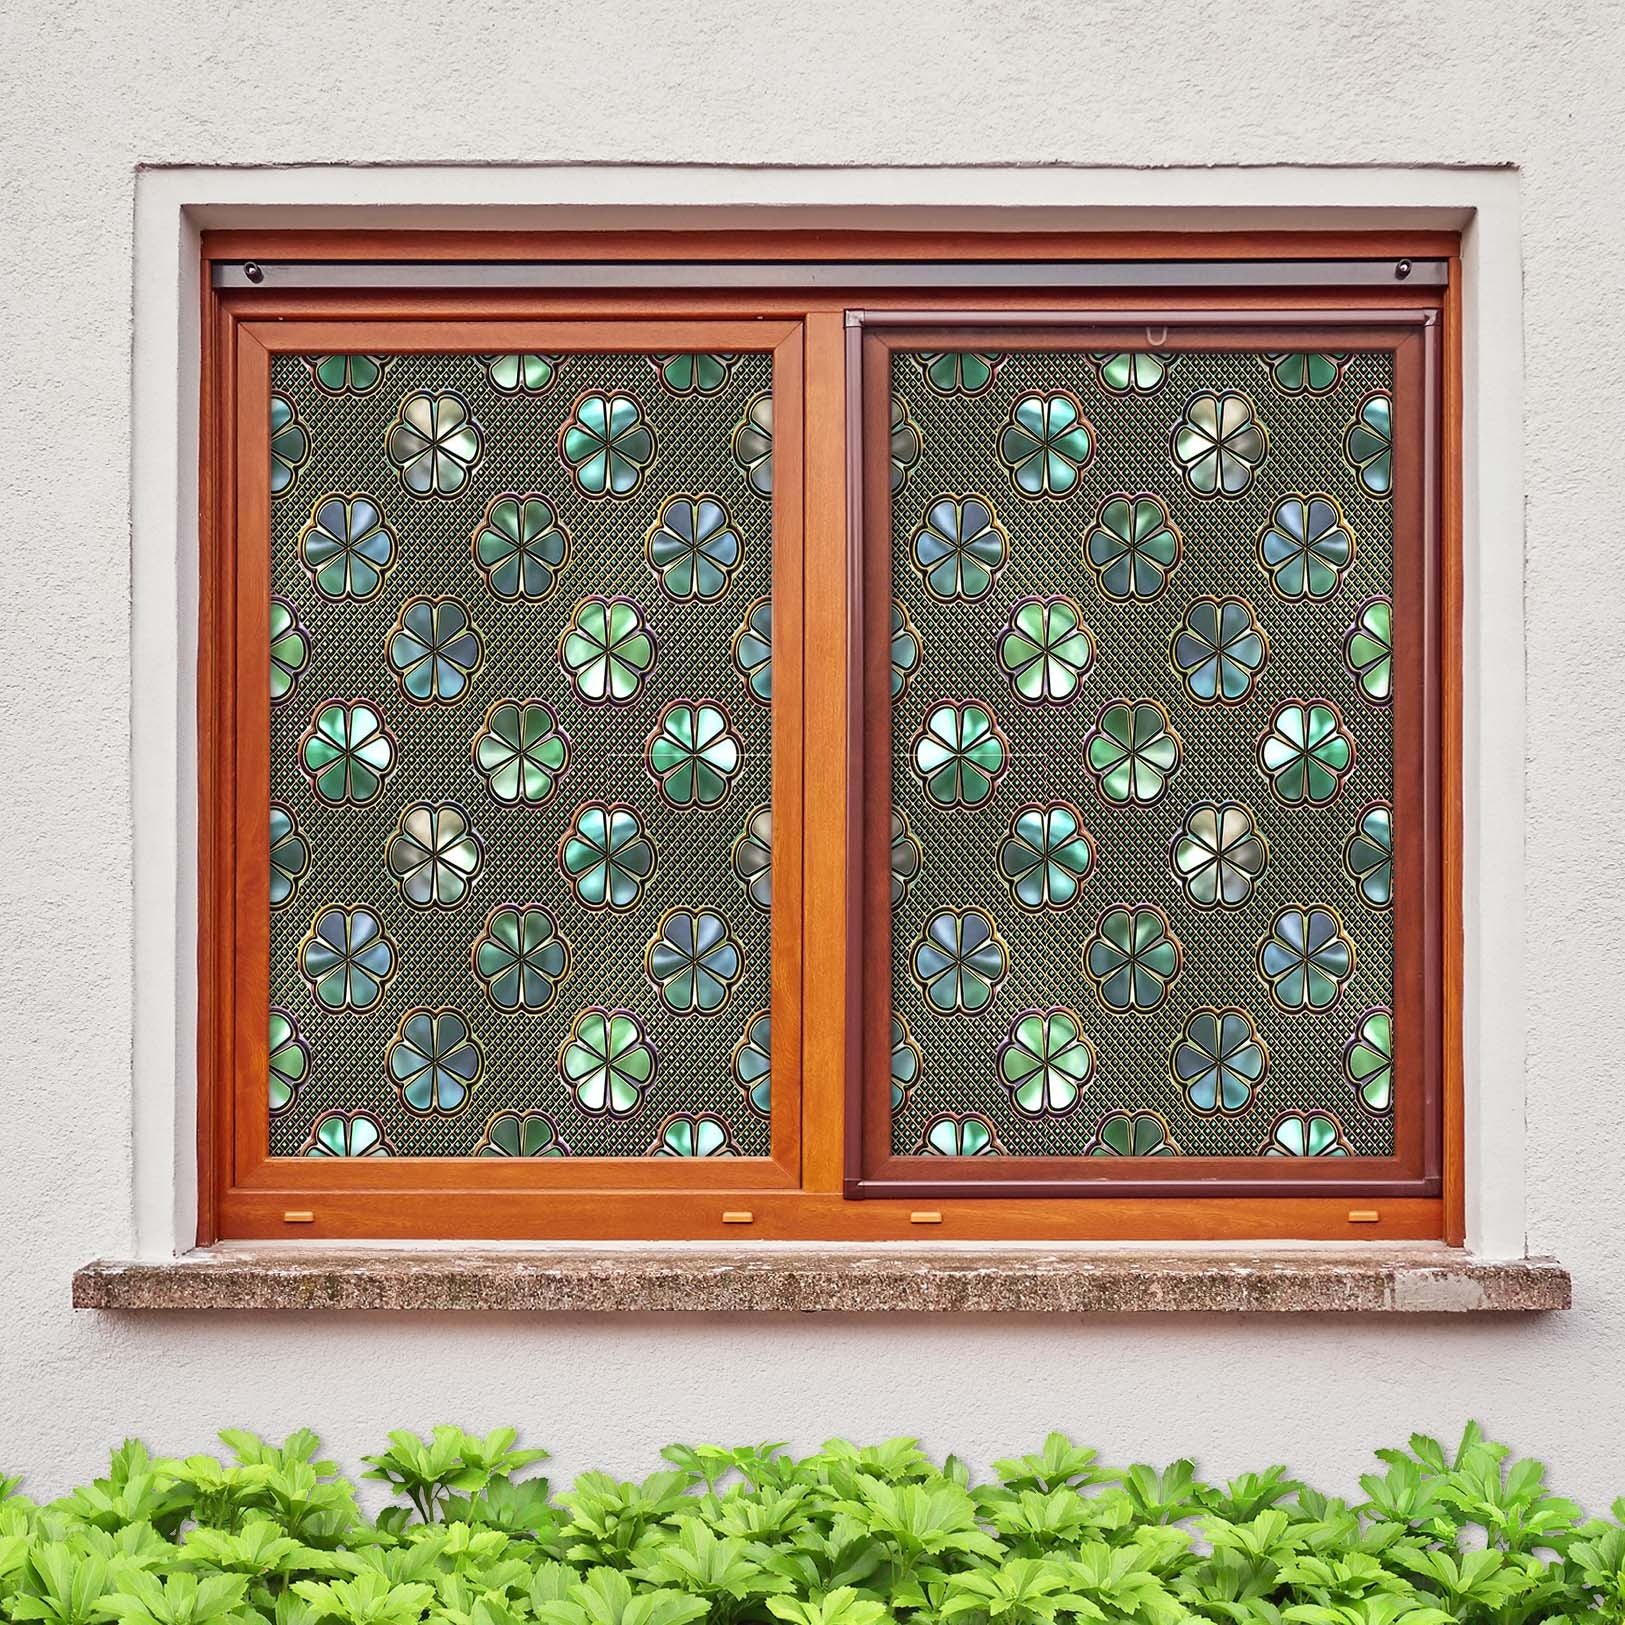 3D Lucky Grass Window 445 Window Film Print Sticker Cling Stained Glass UV Block